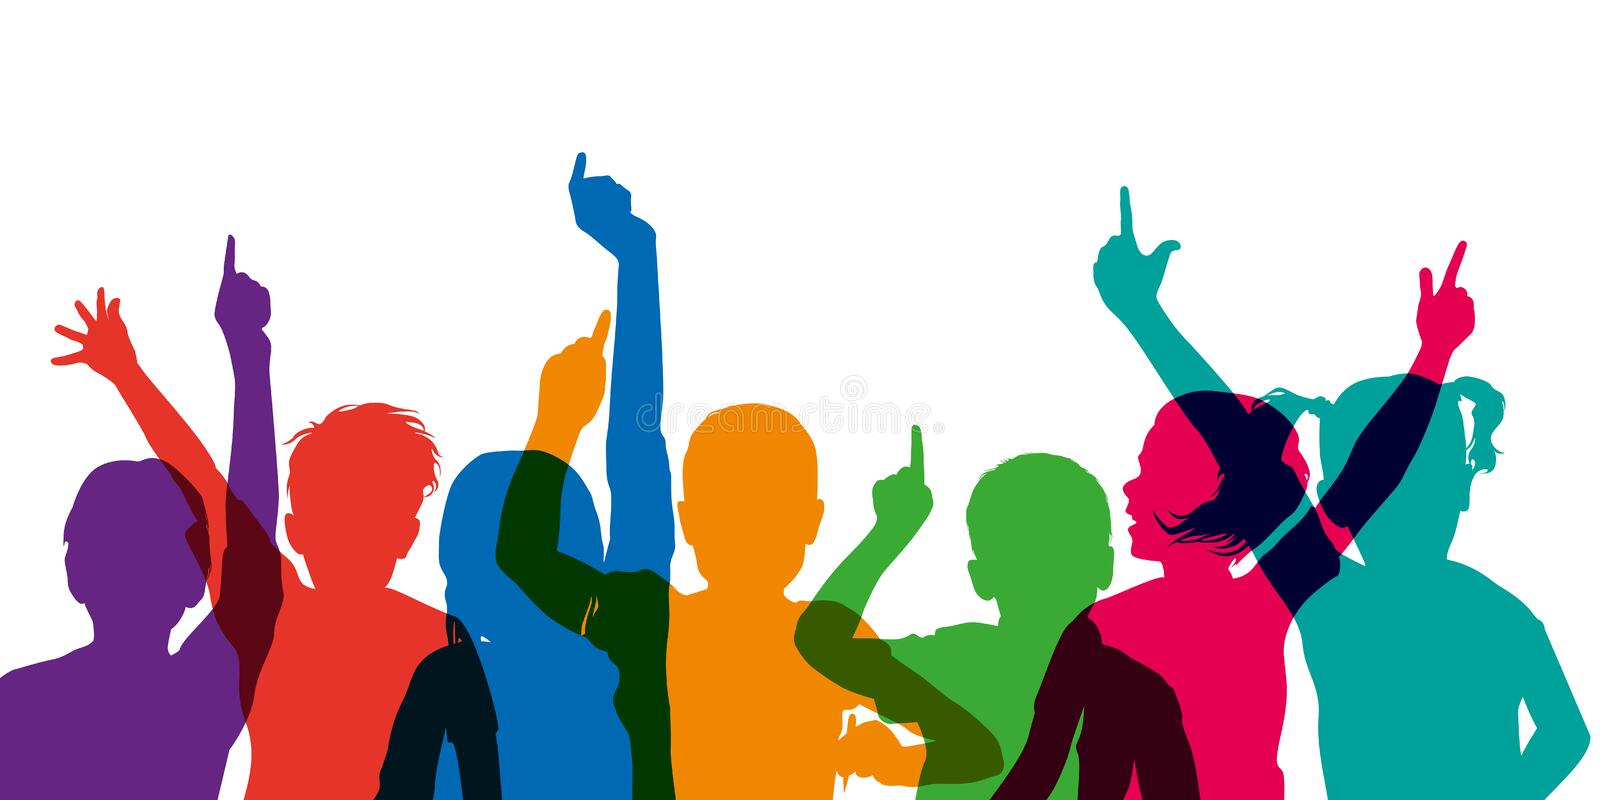 Color silhouette of children raising their hands, at school royalty free illustration